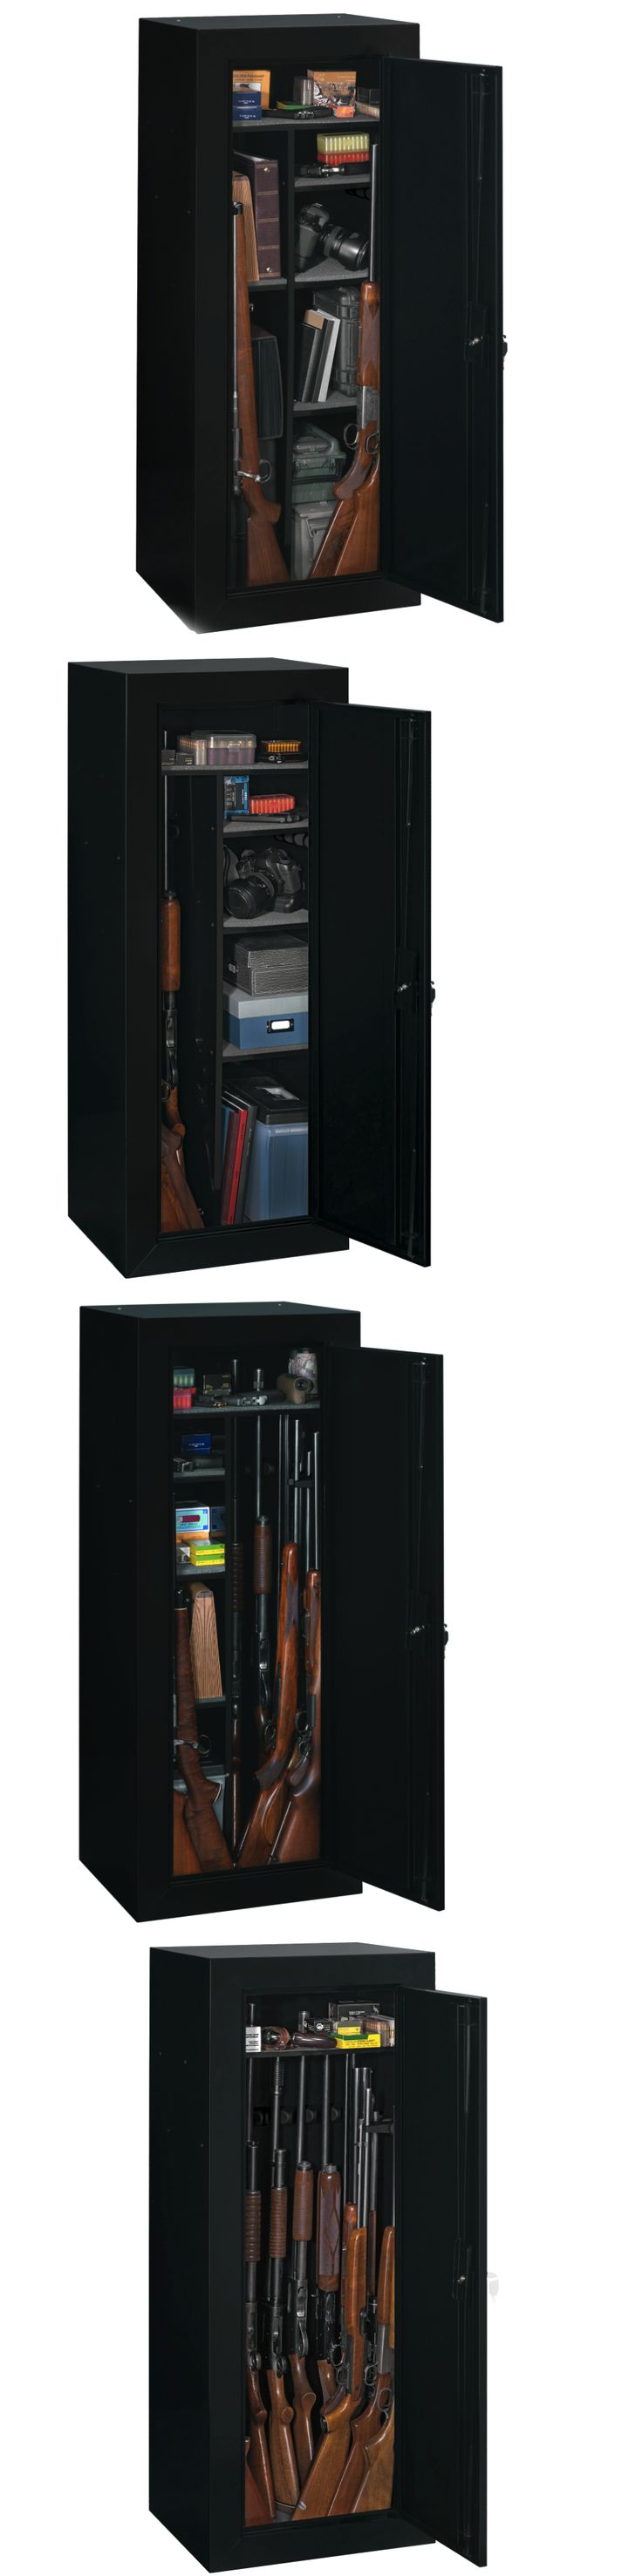 Cabinets and Safes 177877: Best Sentinel Gun Safe And Cabinet Vault For Home Rifle Stand Up Stack On Locker -> BUY IT NOW ONLY: $201.26 on eBay!